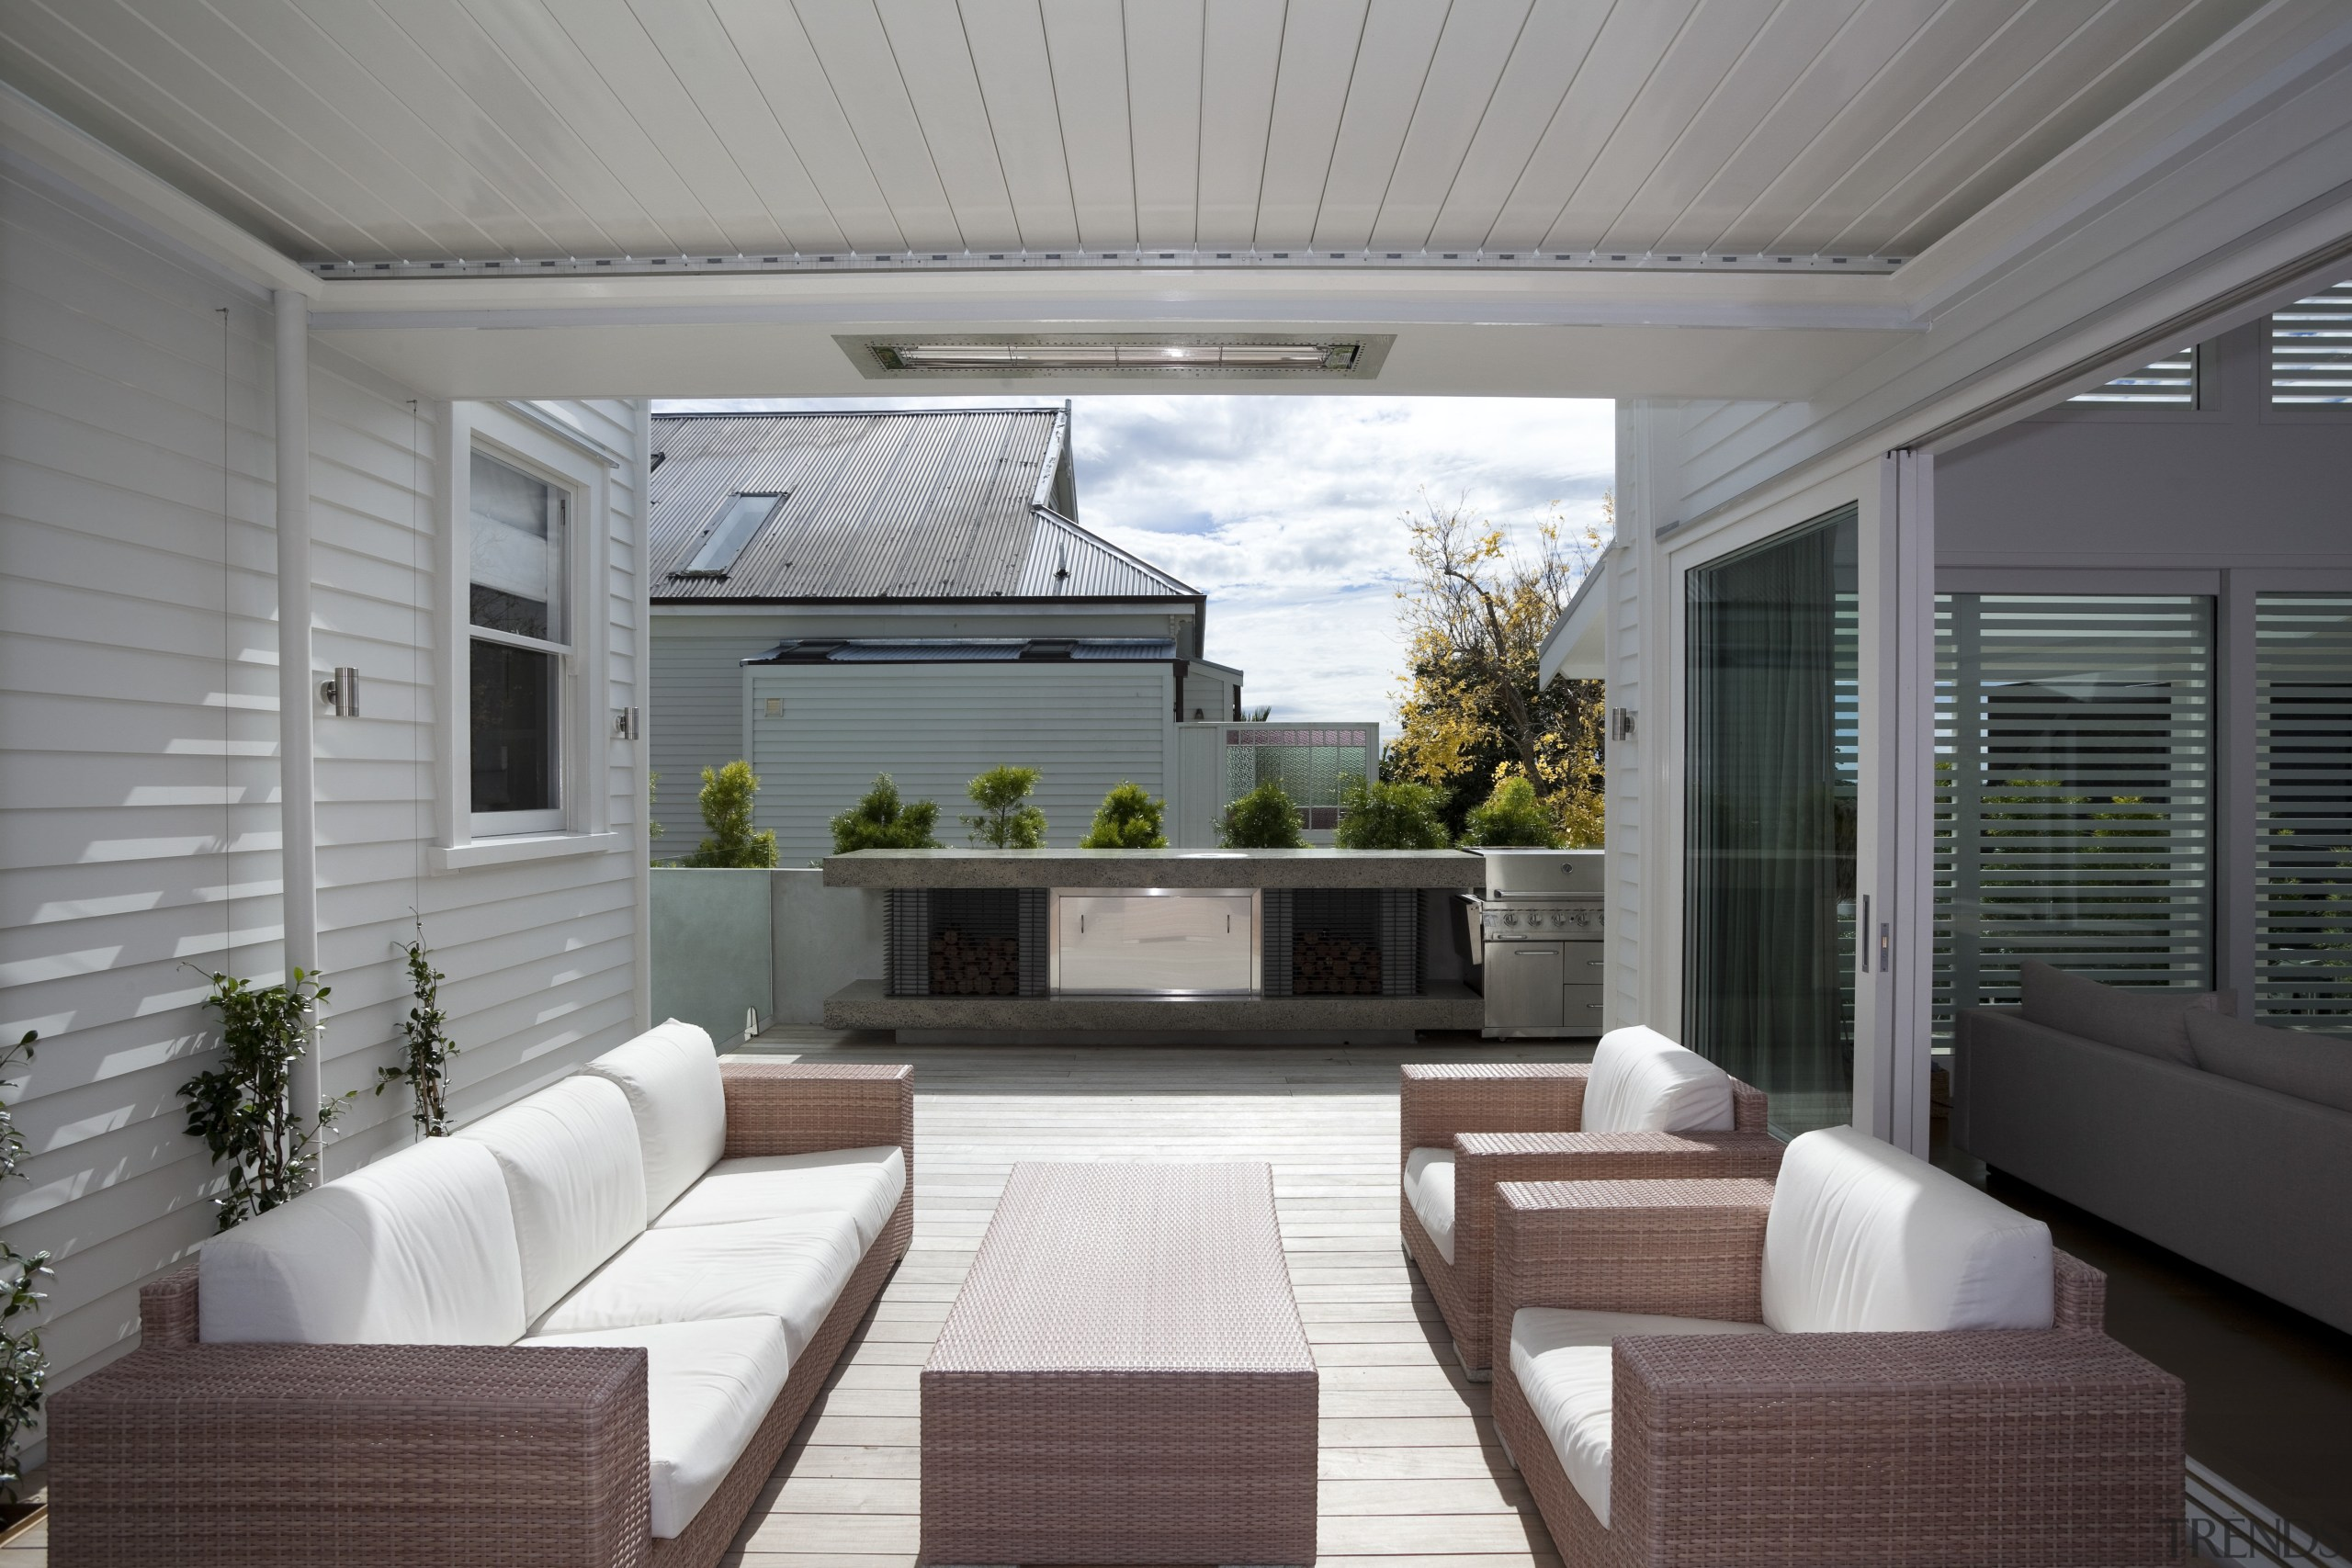 An outdoor room with operable louvres and overhead daylighting, deck, house, interior design, living room, outdoor structure, patio, real estate, window, gray